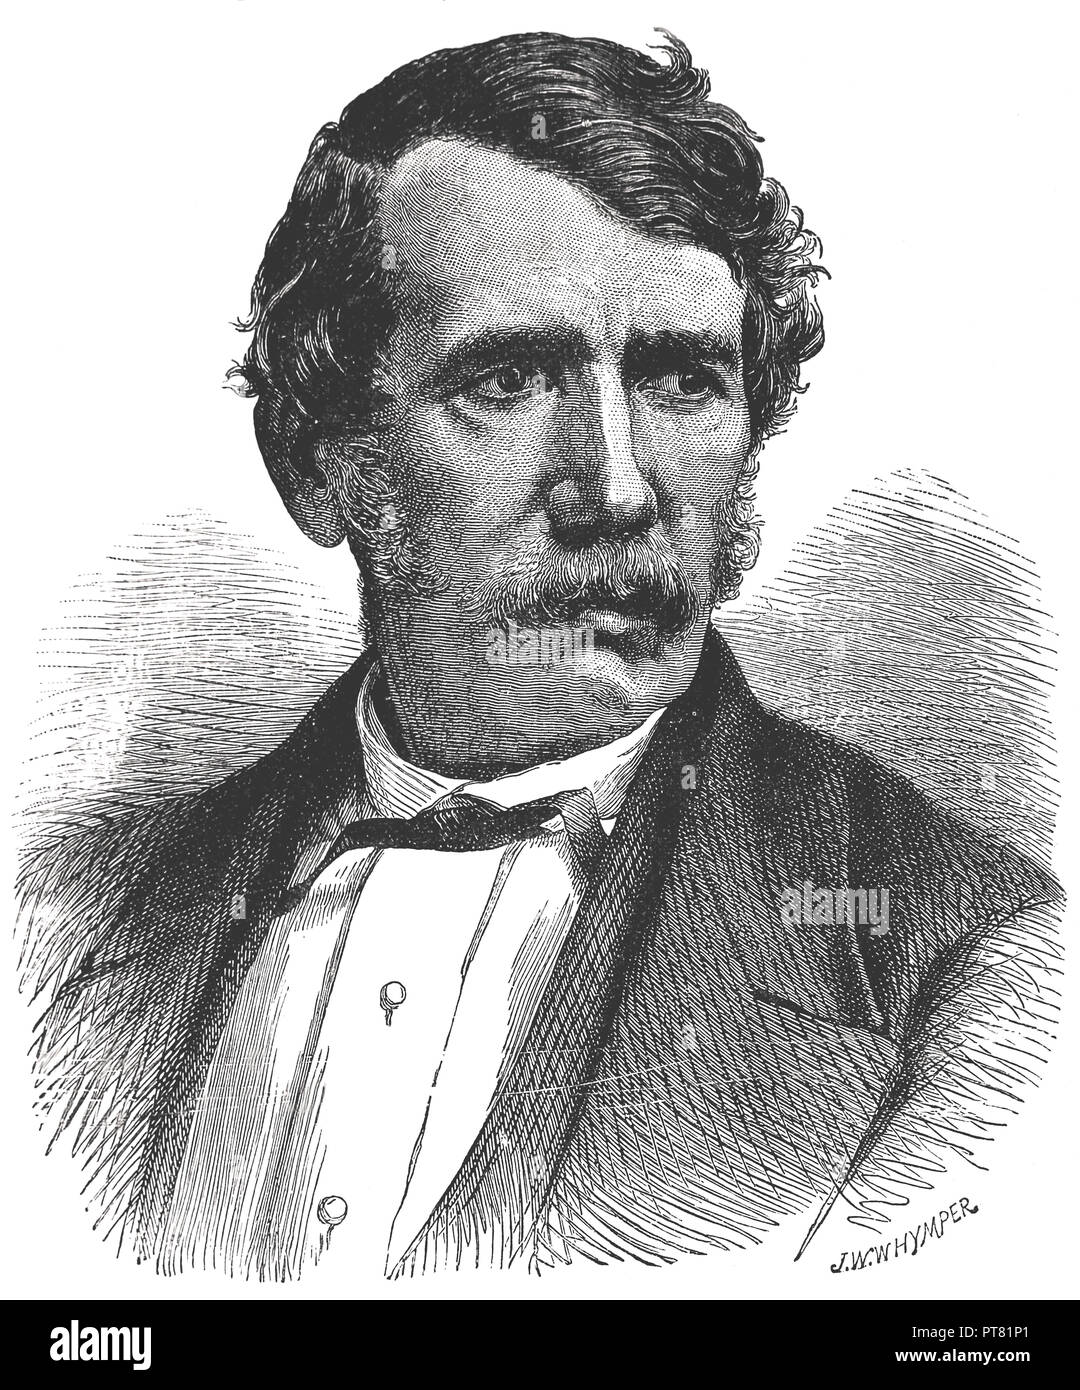 David Livingstone (1813-1873). Engraving. Missionary, physician and explorer of African territories. - Stock Image